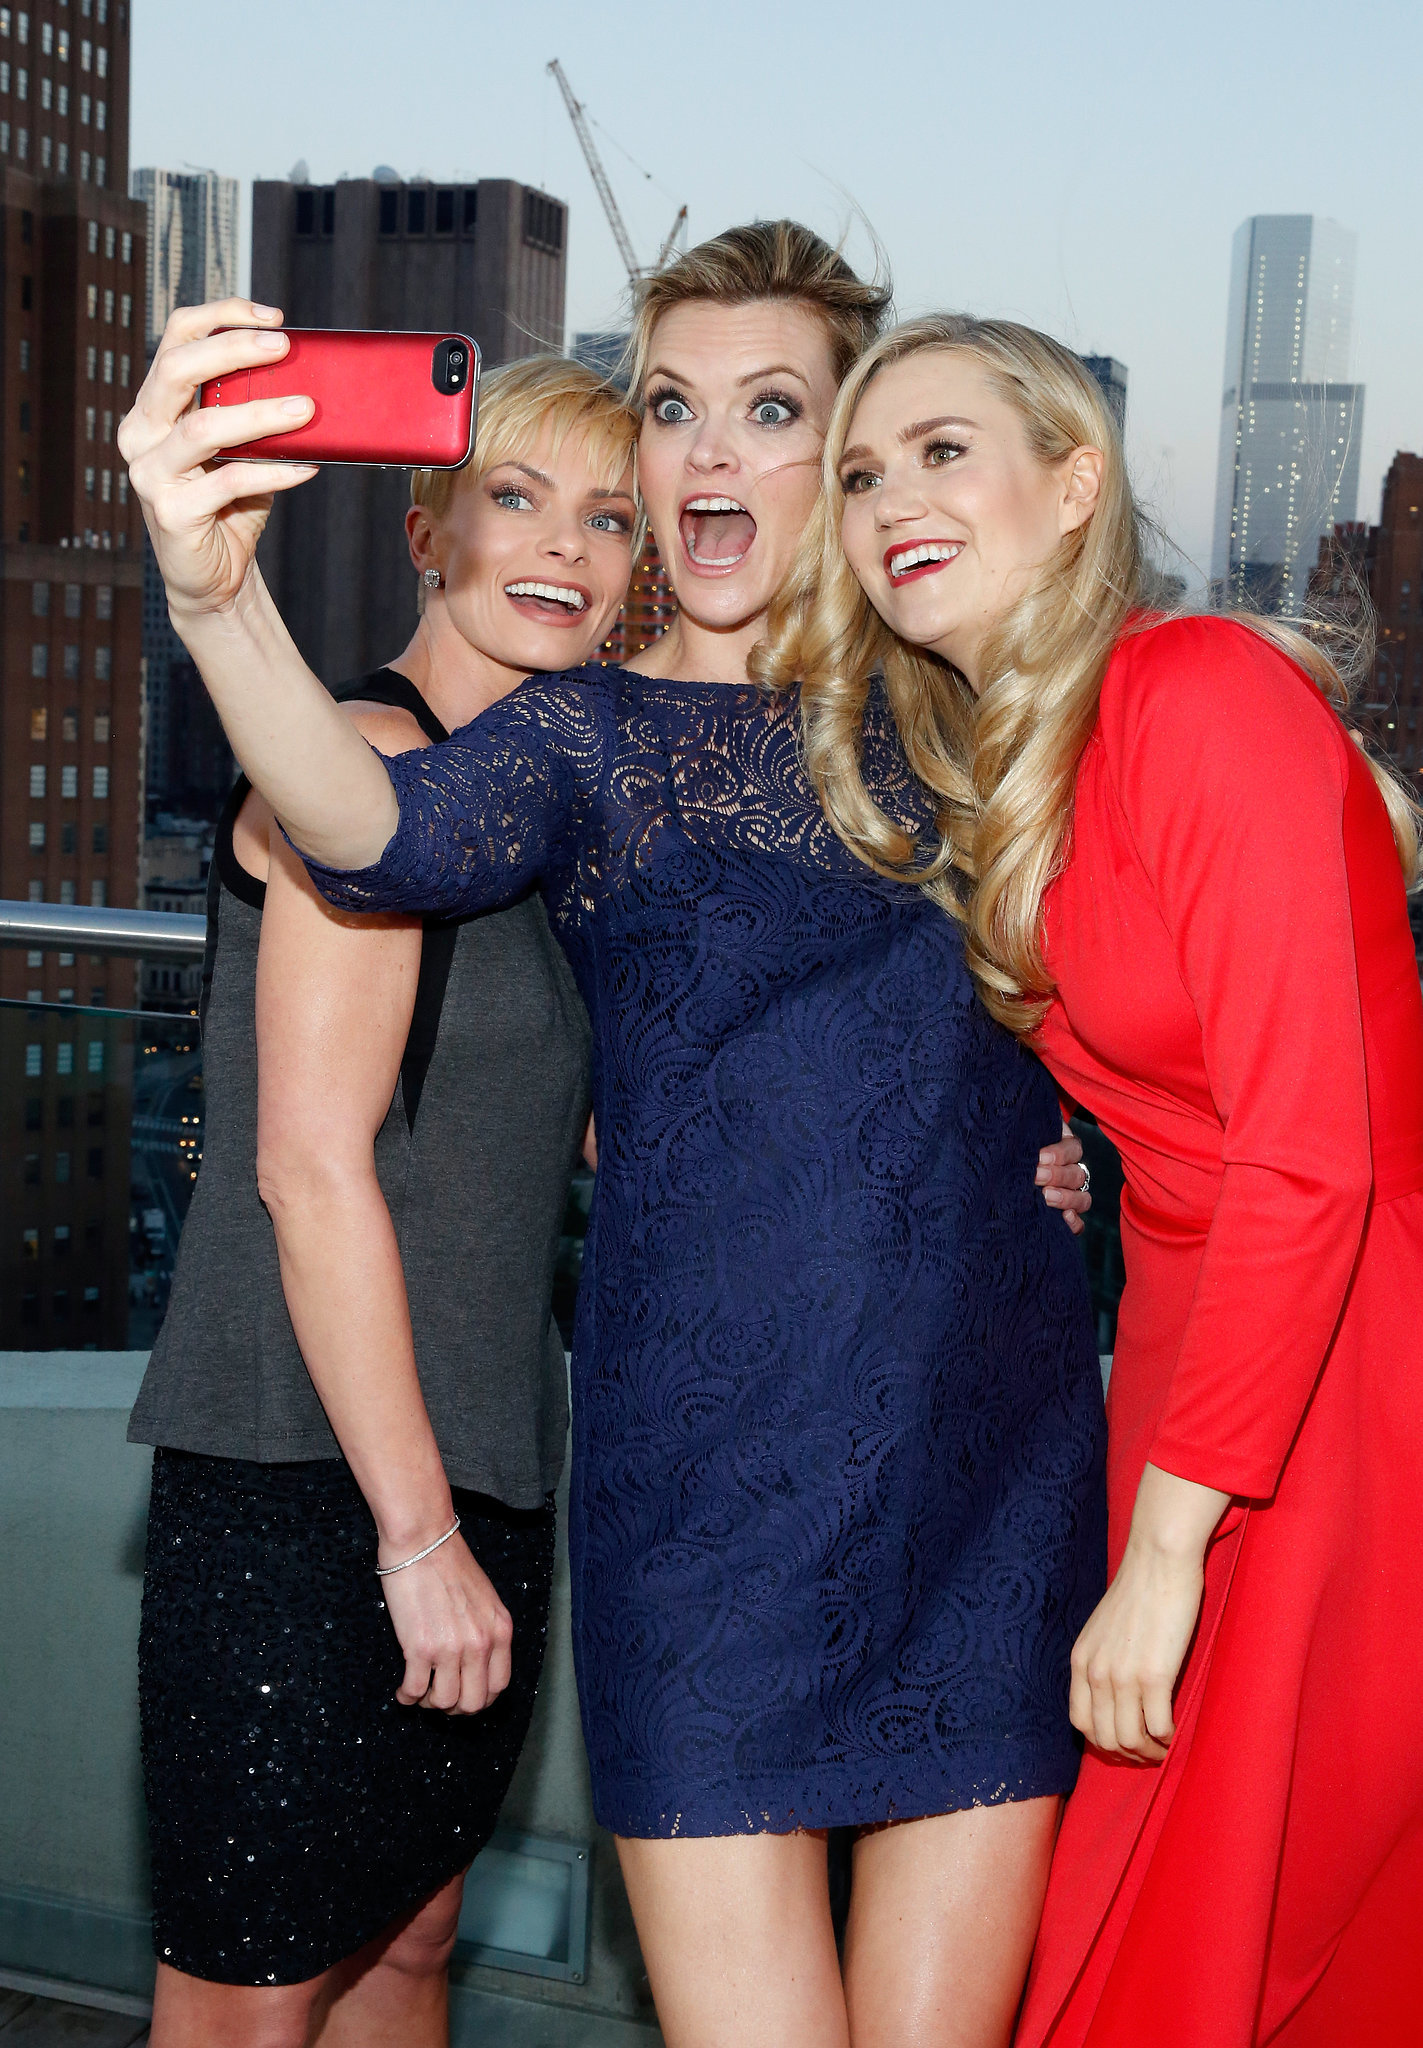 Jaime pressly missi pyle and nora kirkpatrick took a silly selfie at